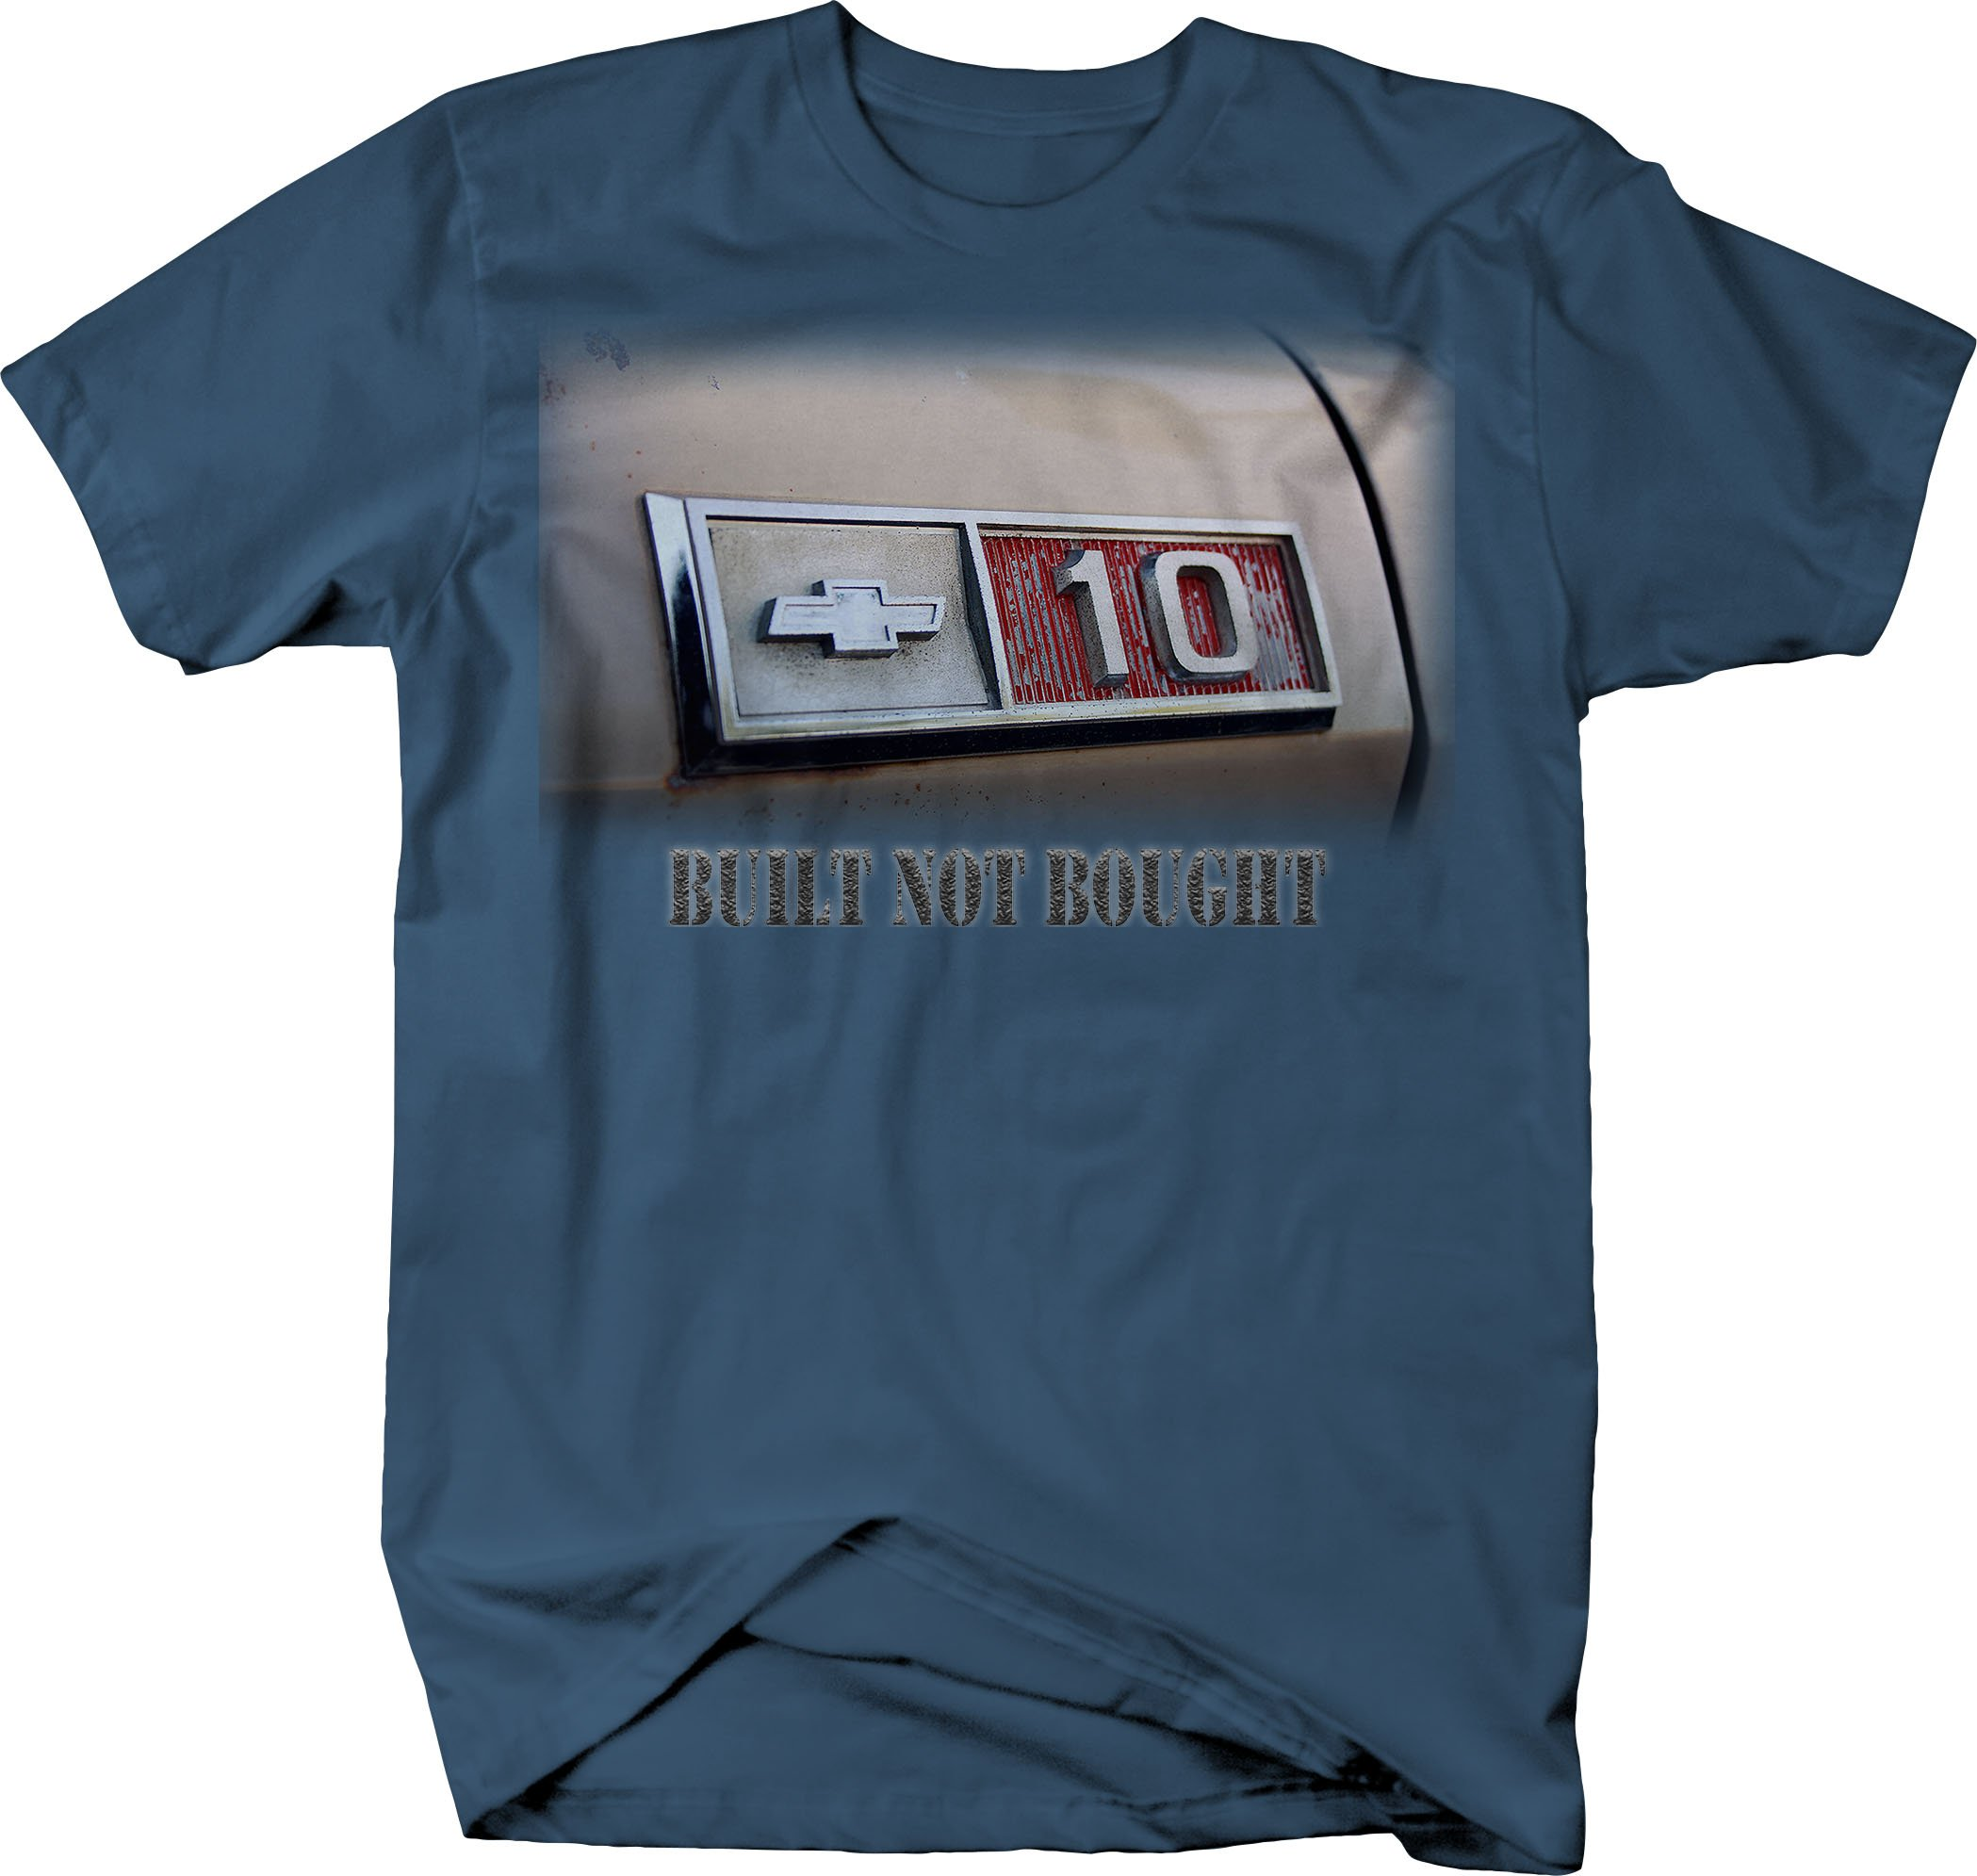 OS Gear Chevy C10 Built Not Bought Vintage 1970's Truck Tshirt - Large by OS Gear